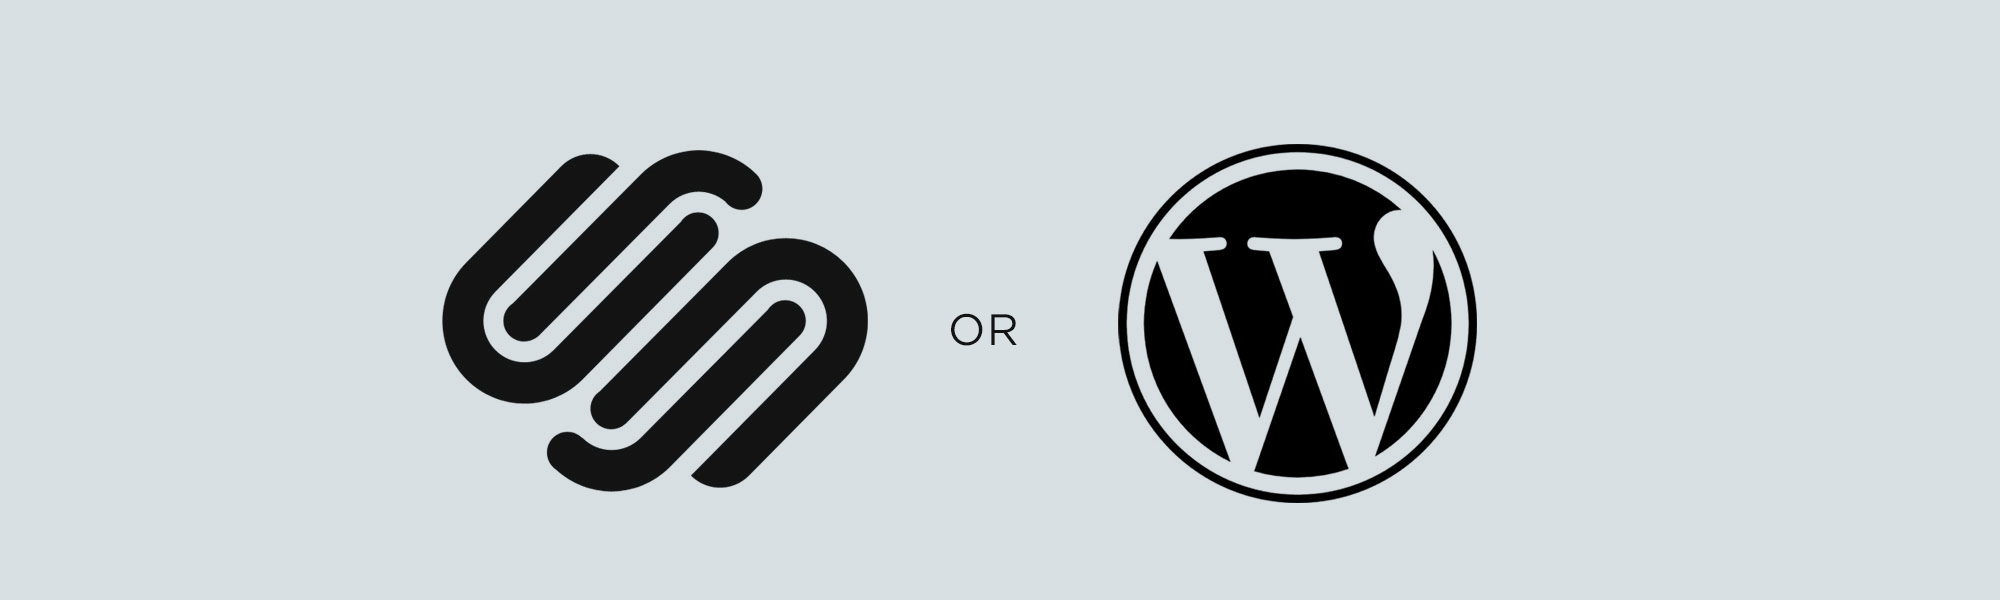 WordPress or SquareSpace